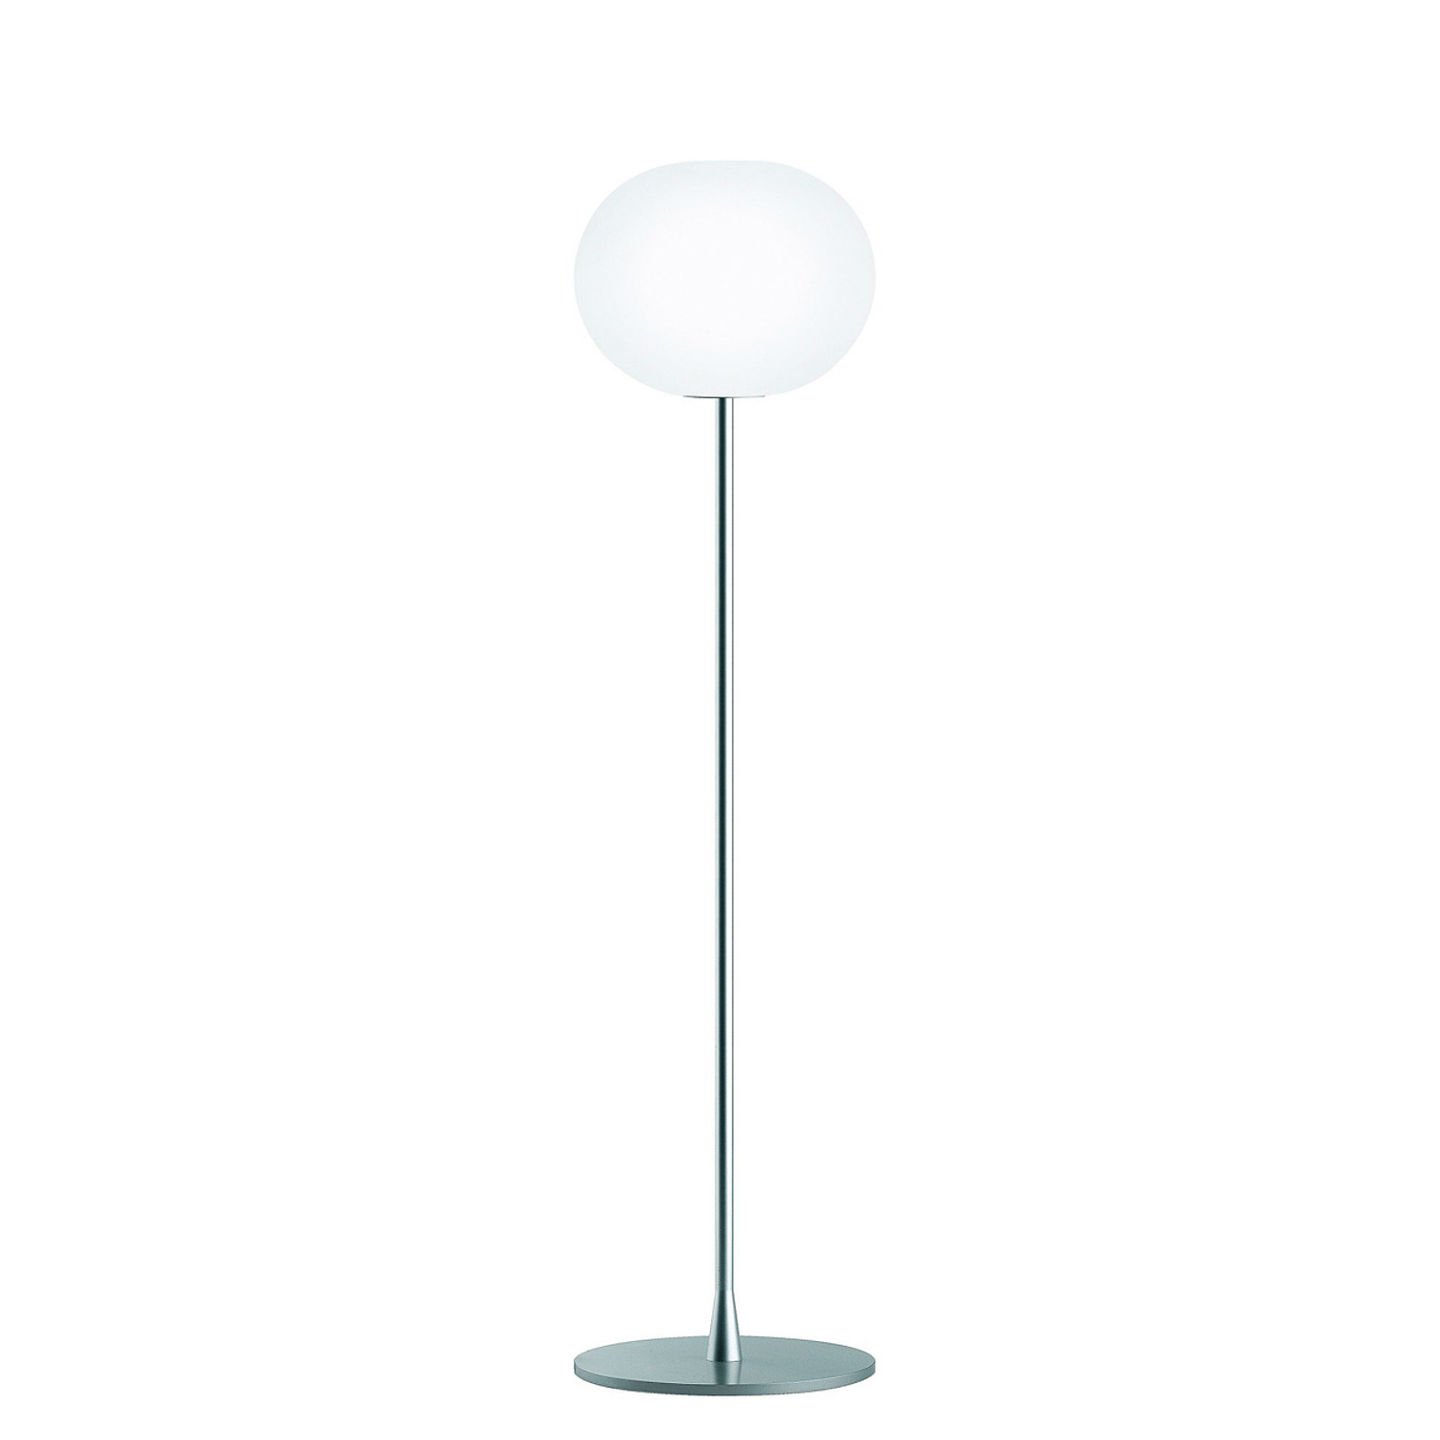 Glo Ball F2 lámpara de Pie 175cm E27 150W - Plata mate